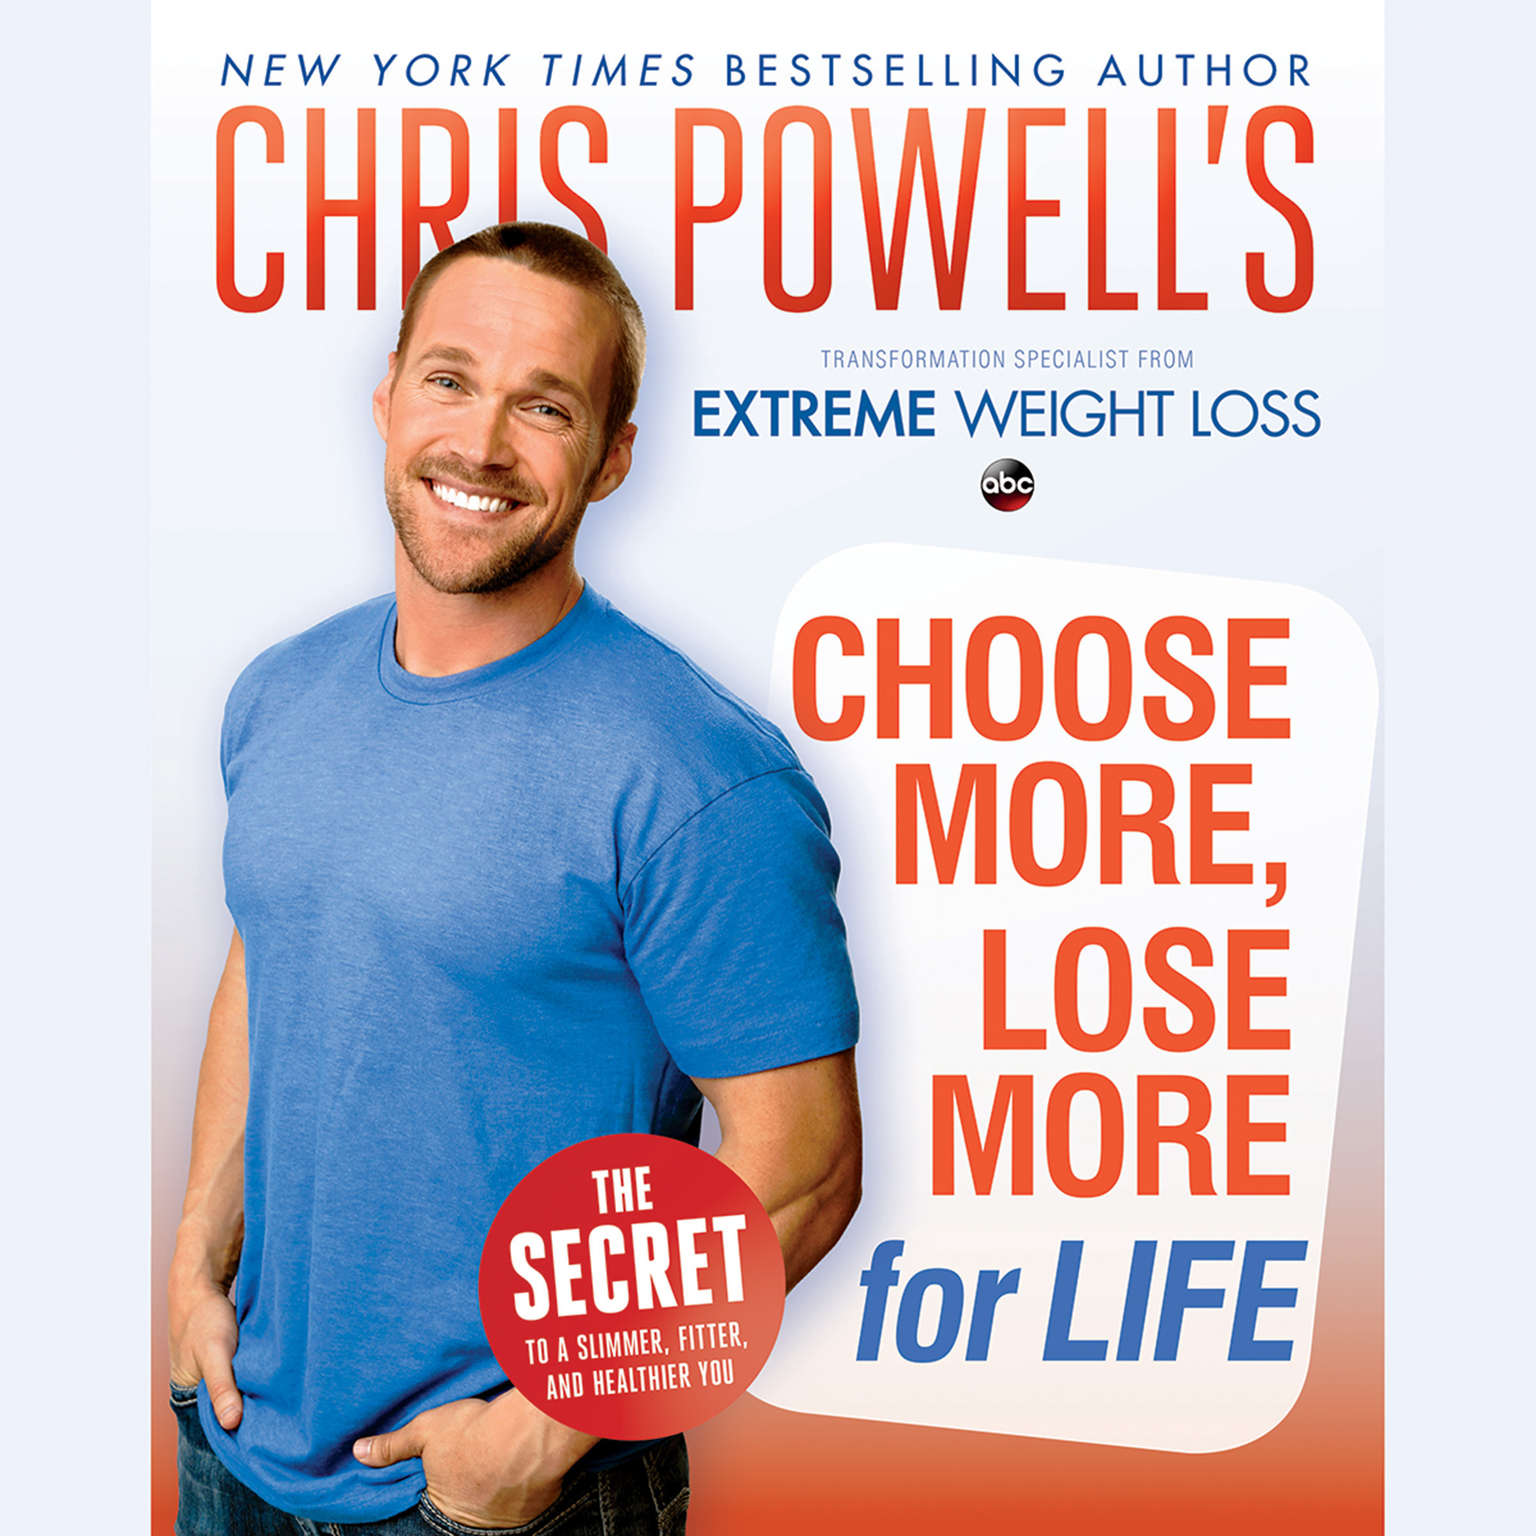 Printable Chris Powell's Choose More, Lose More for Life Audiobook Cover Art